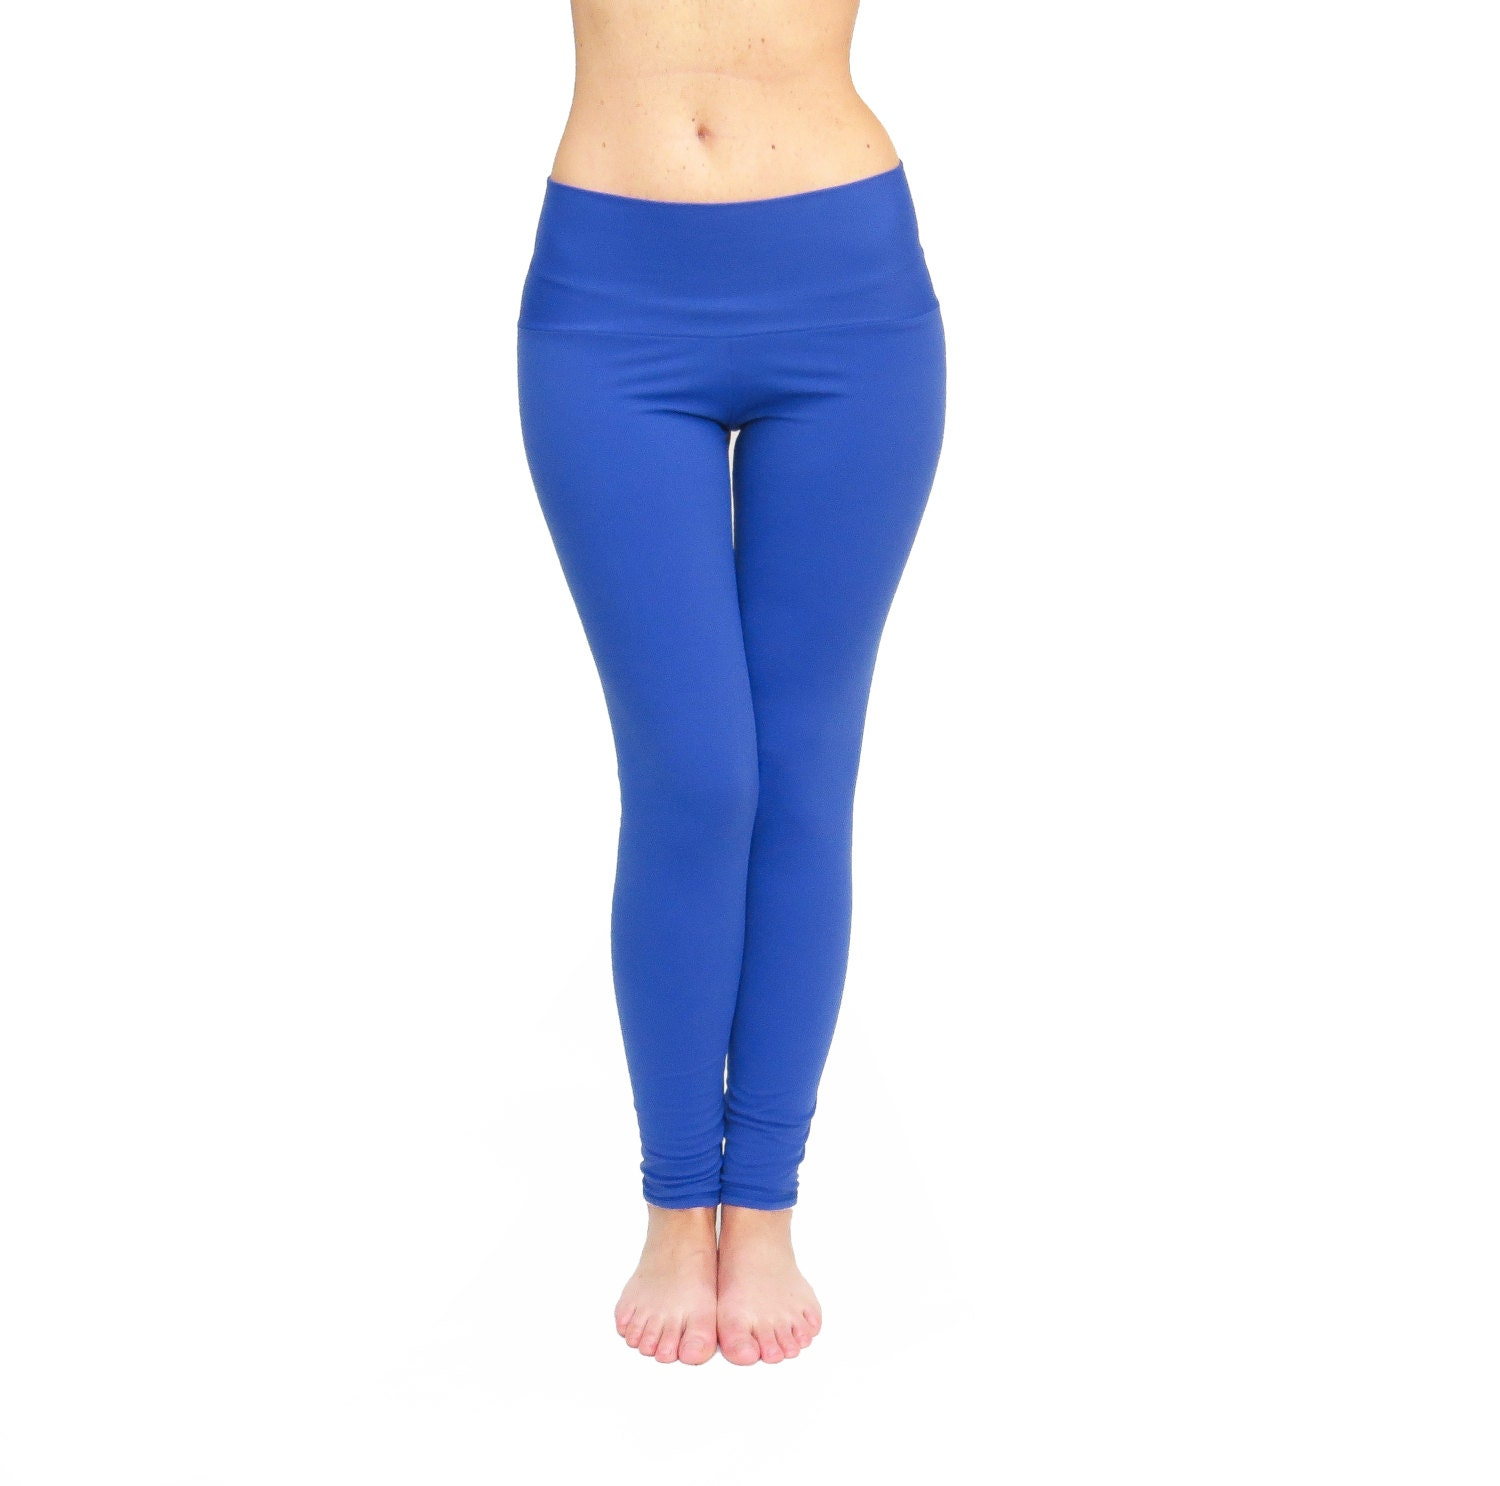 High Waist Leggings Blue Yoga Pants Activewear Gym by AncyShop